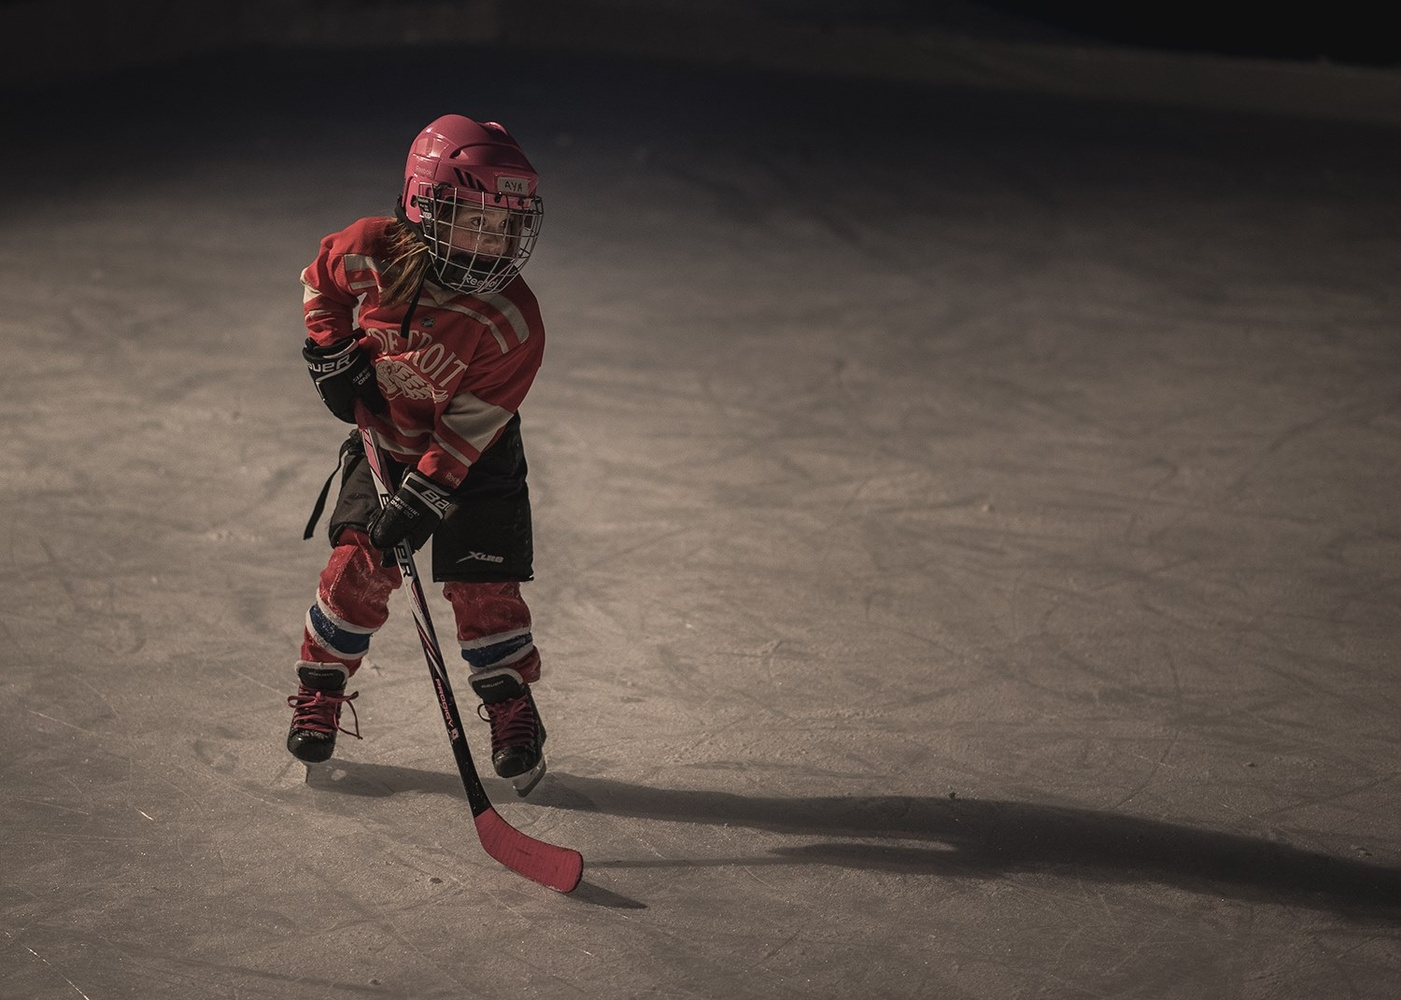 Smallest Hockey Star by Dave Harrell